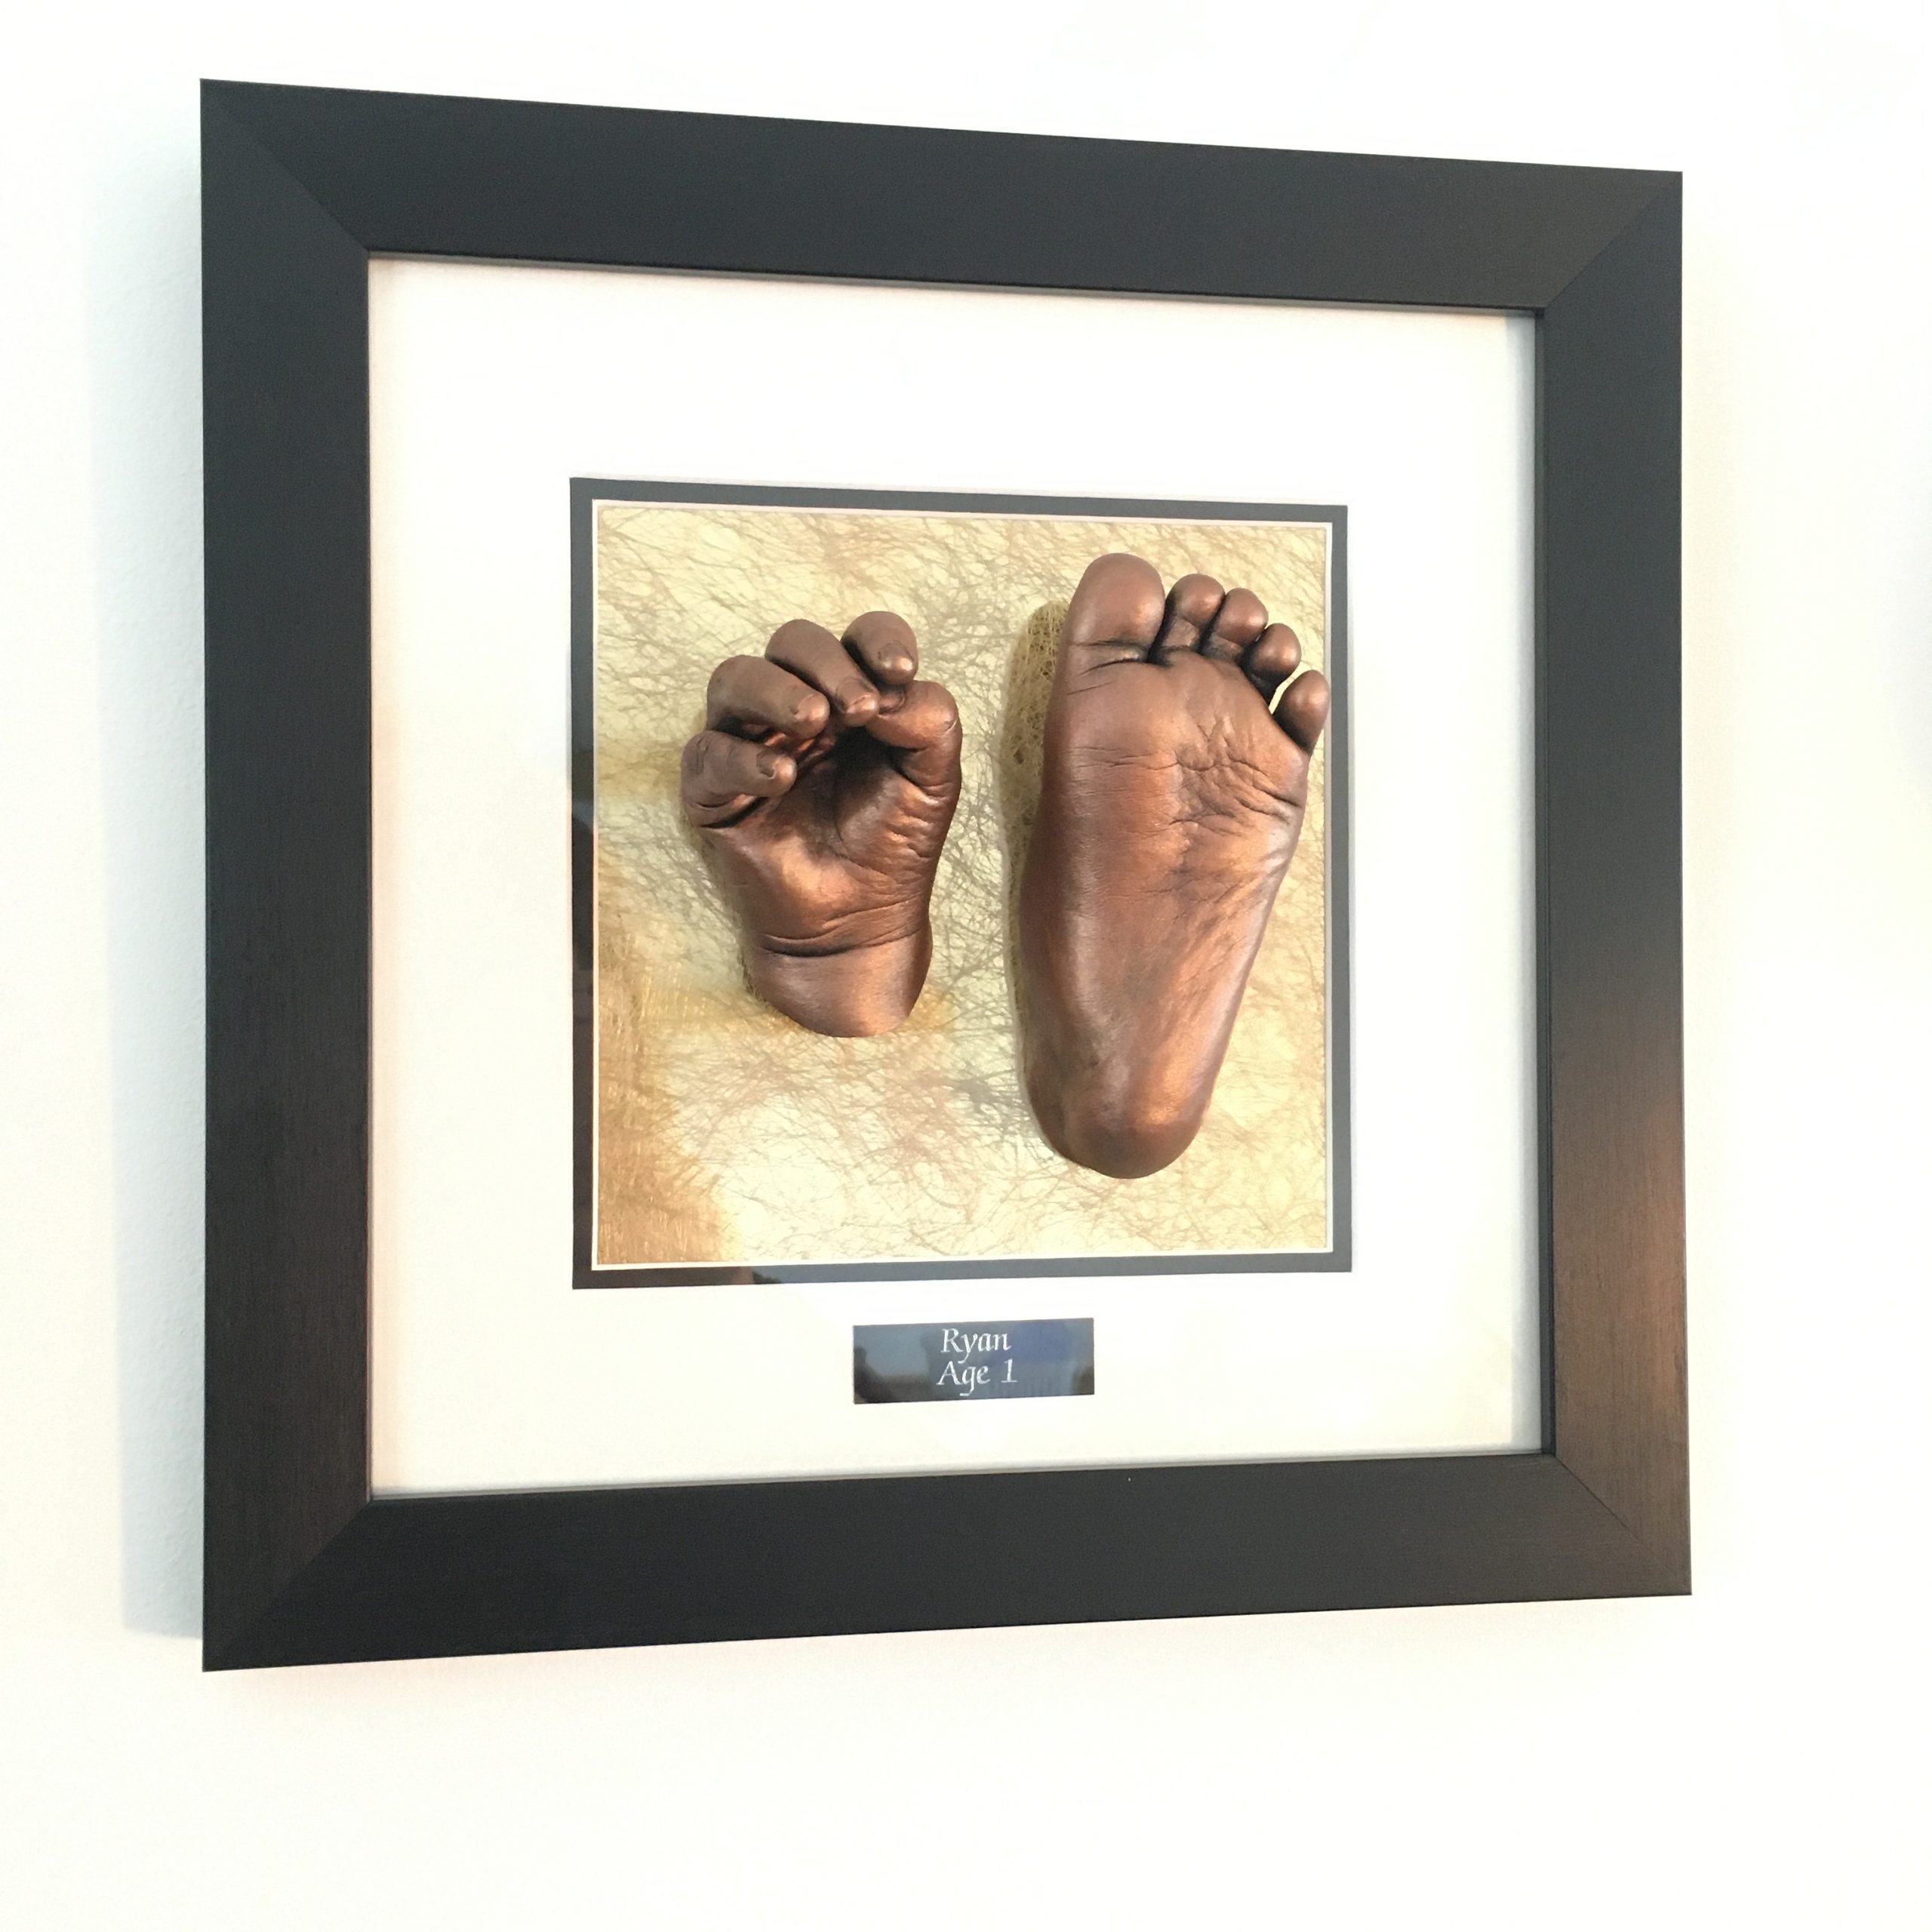 two baby casts hand and foot moulds framed in a black frame